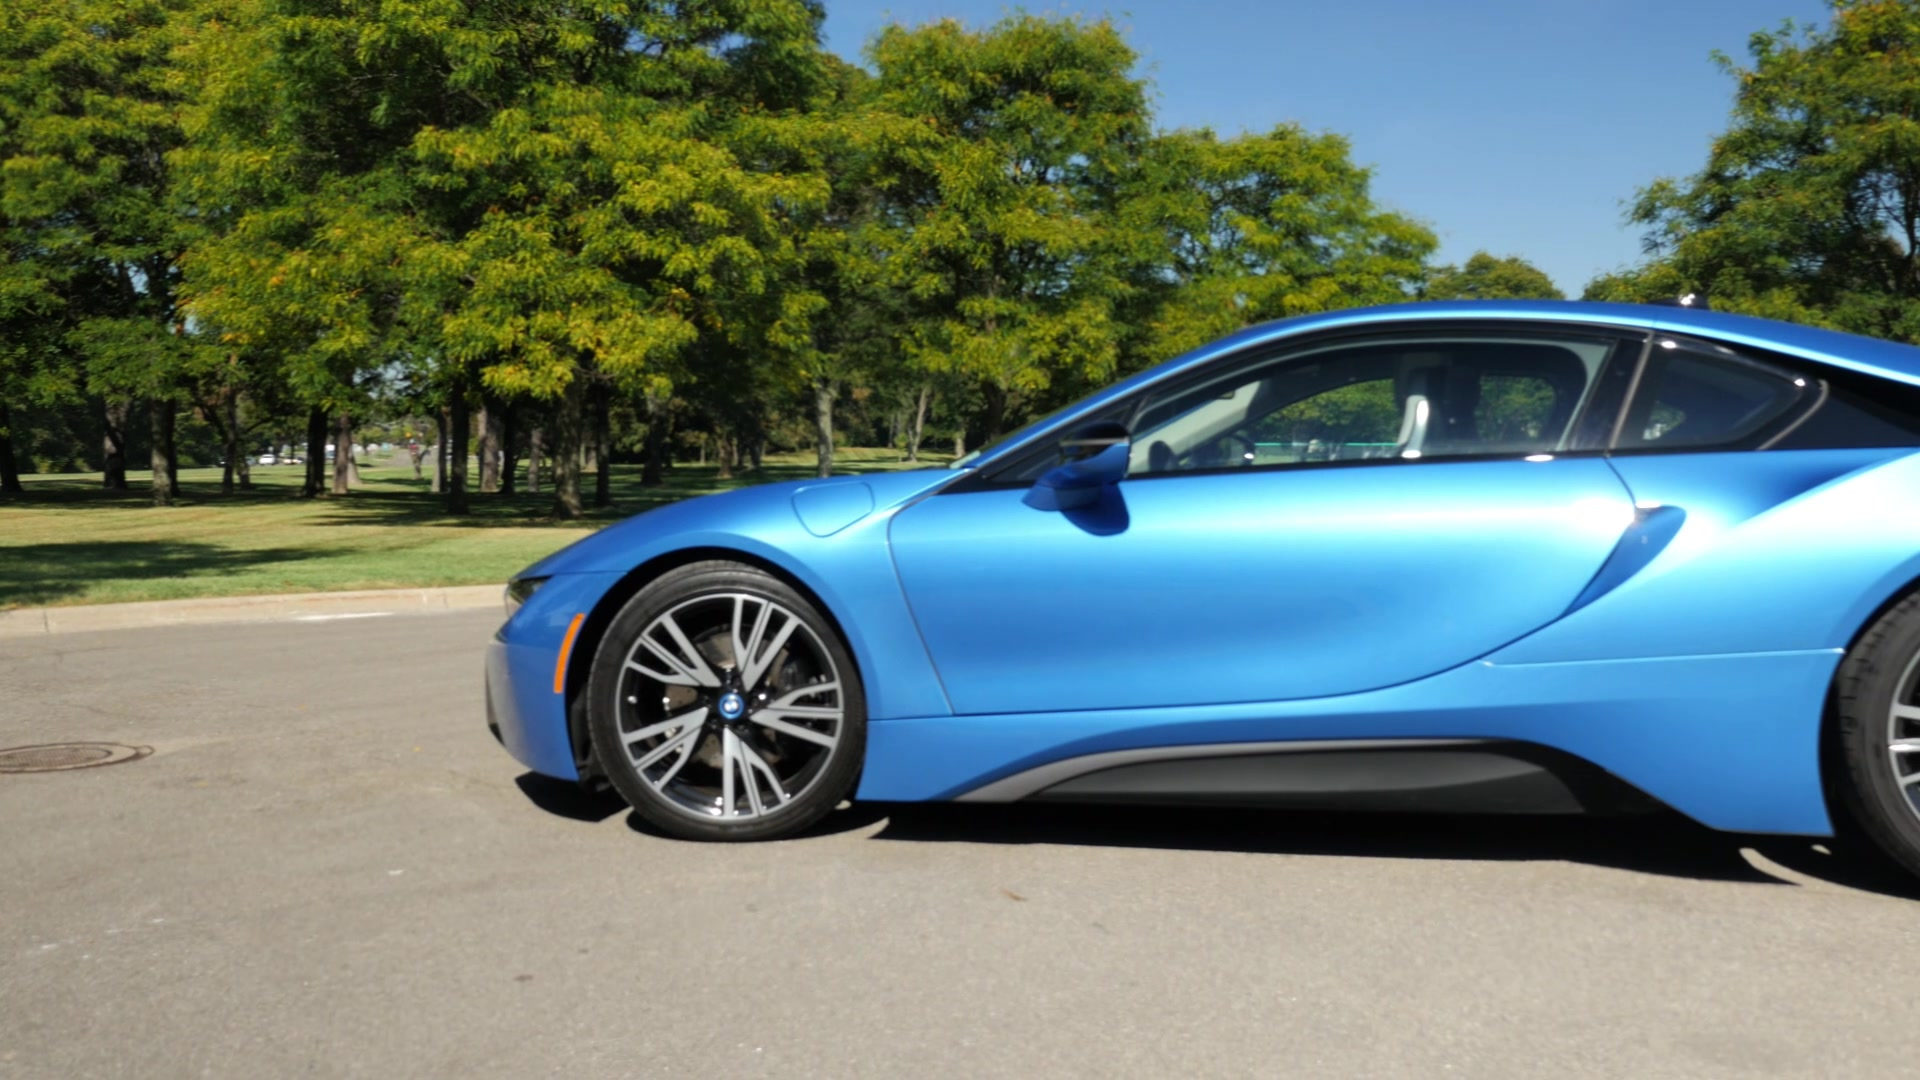 BMW gears up to mass-produce electric cars by 2020   Autoblog